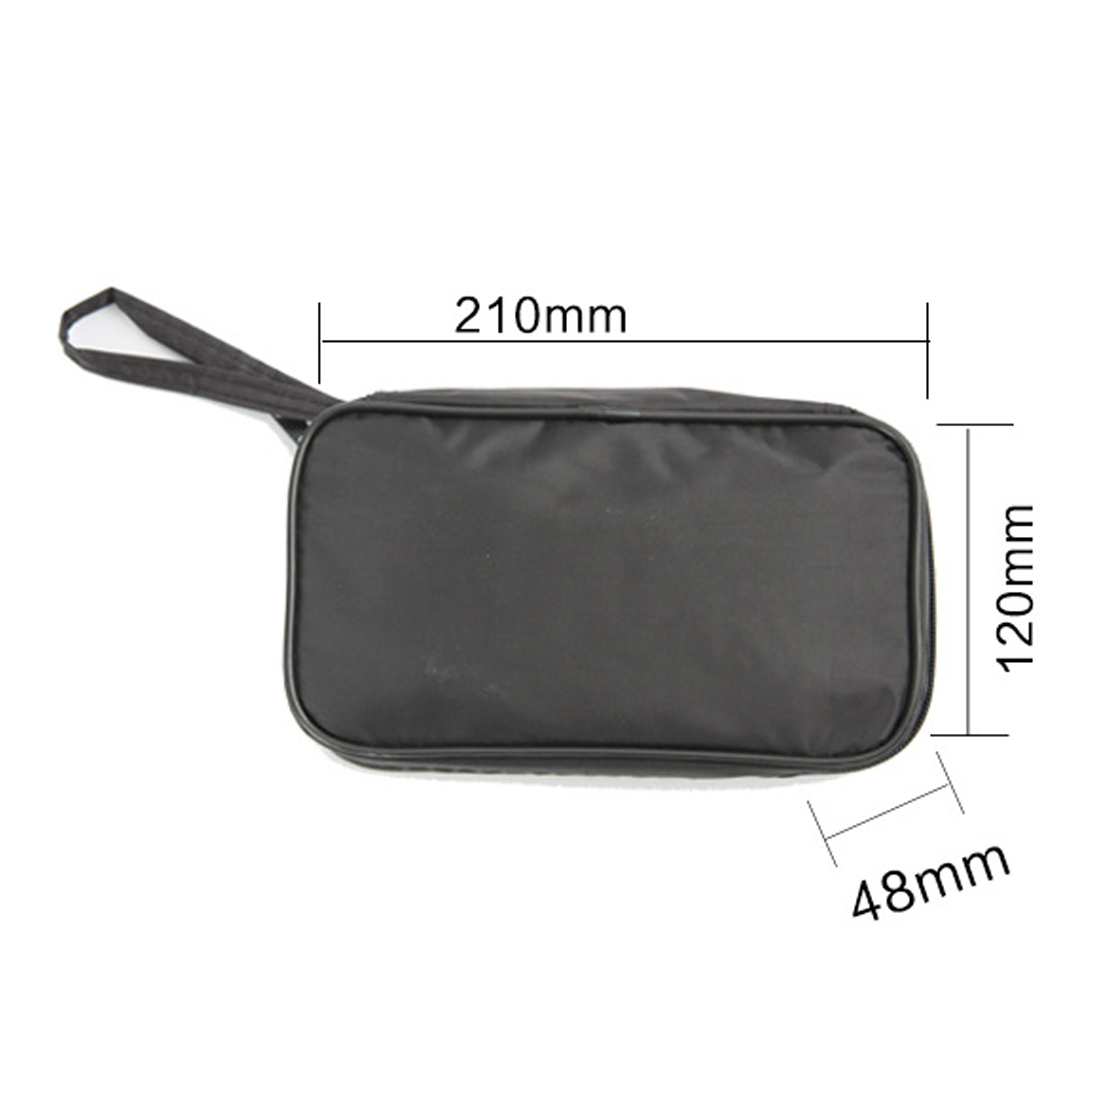 Waterproof Tools Bag Multimeter Black Canvas Bag For UT61 Series Digital Multimeter Cloth Durable20*12*4cm